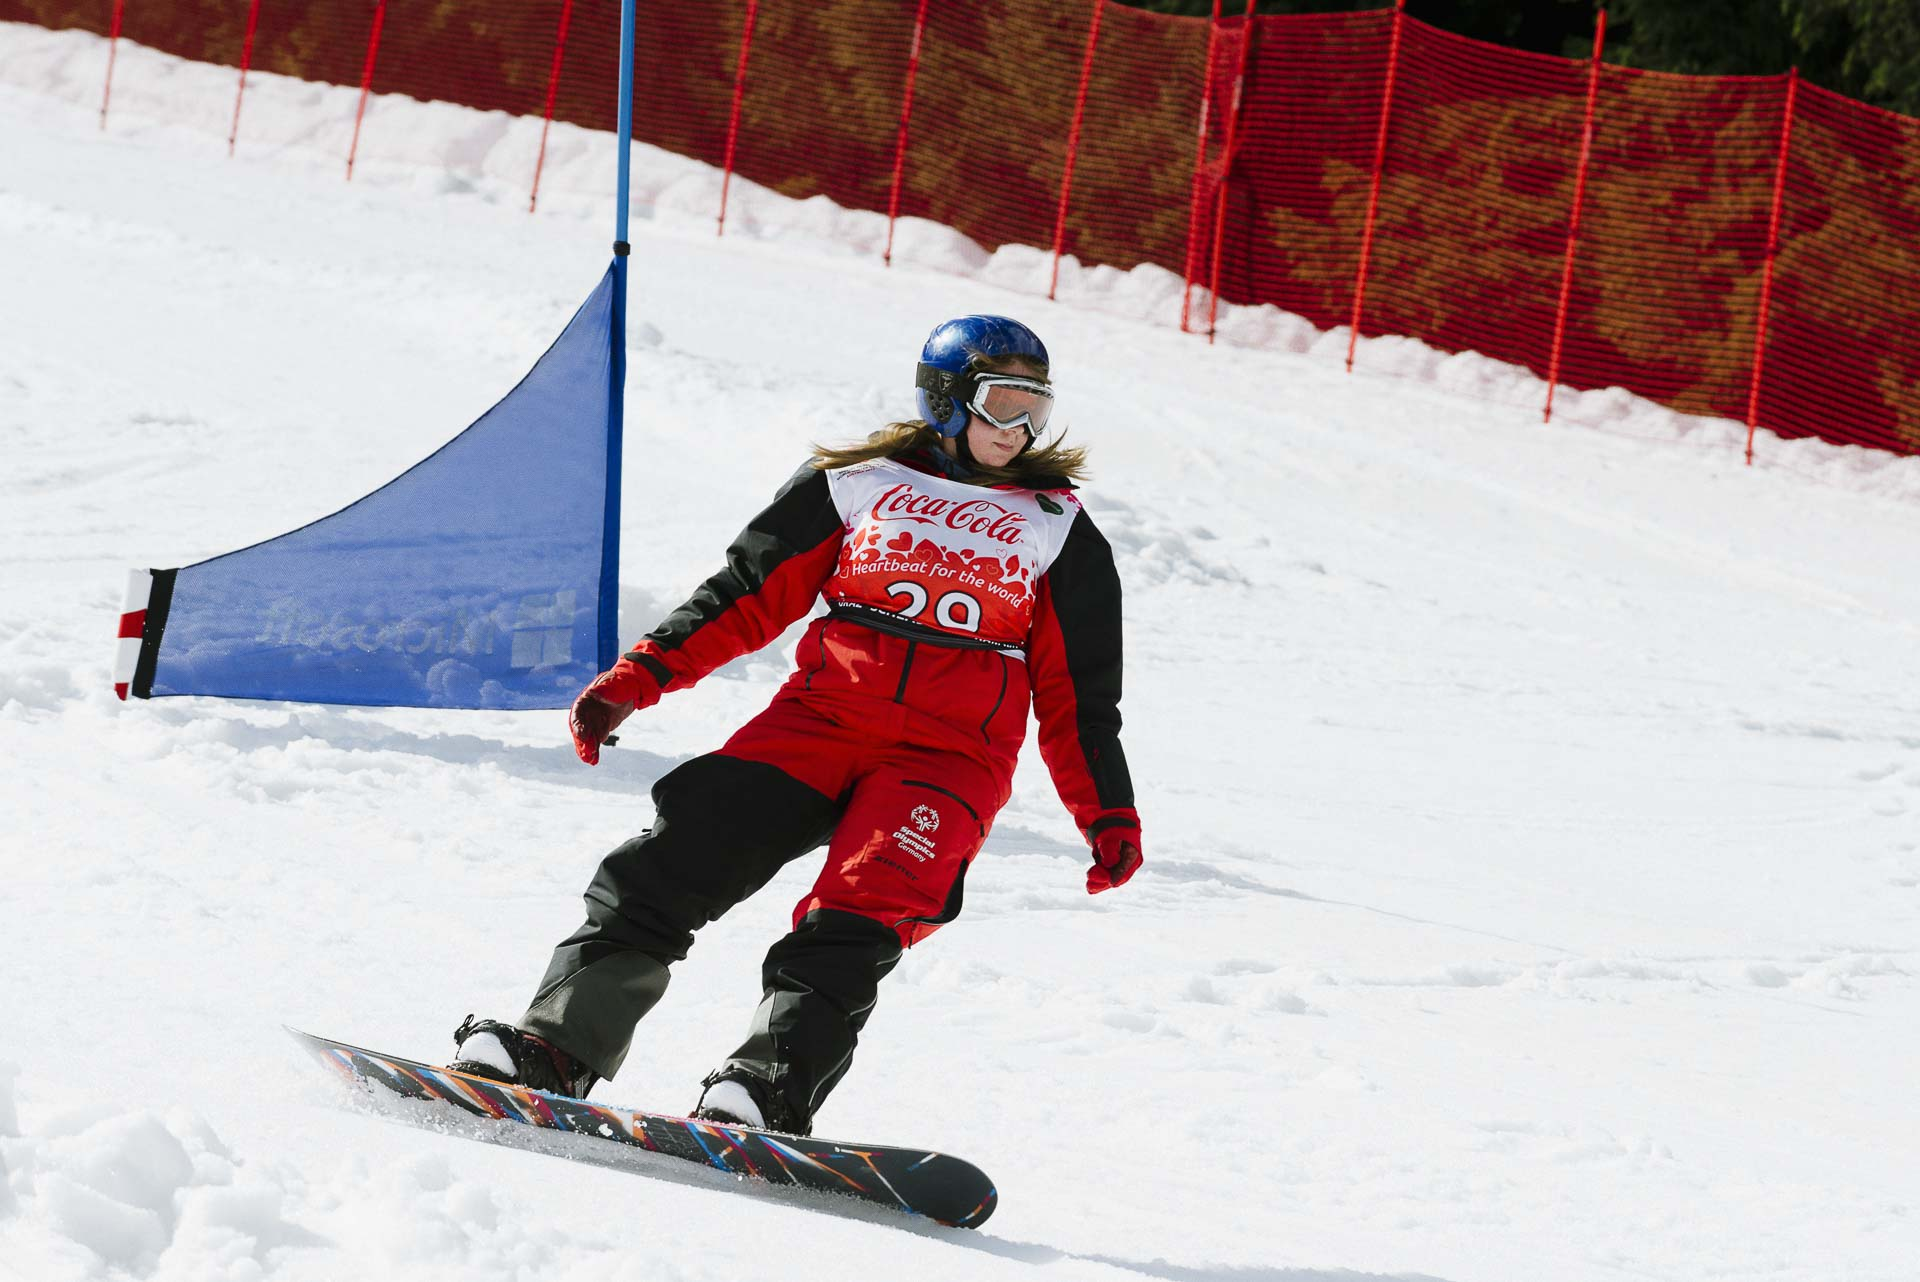 Special Olympics Schladming